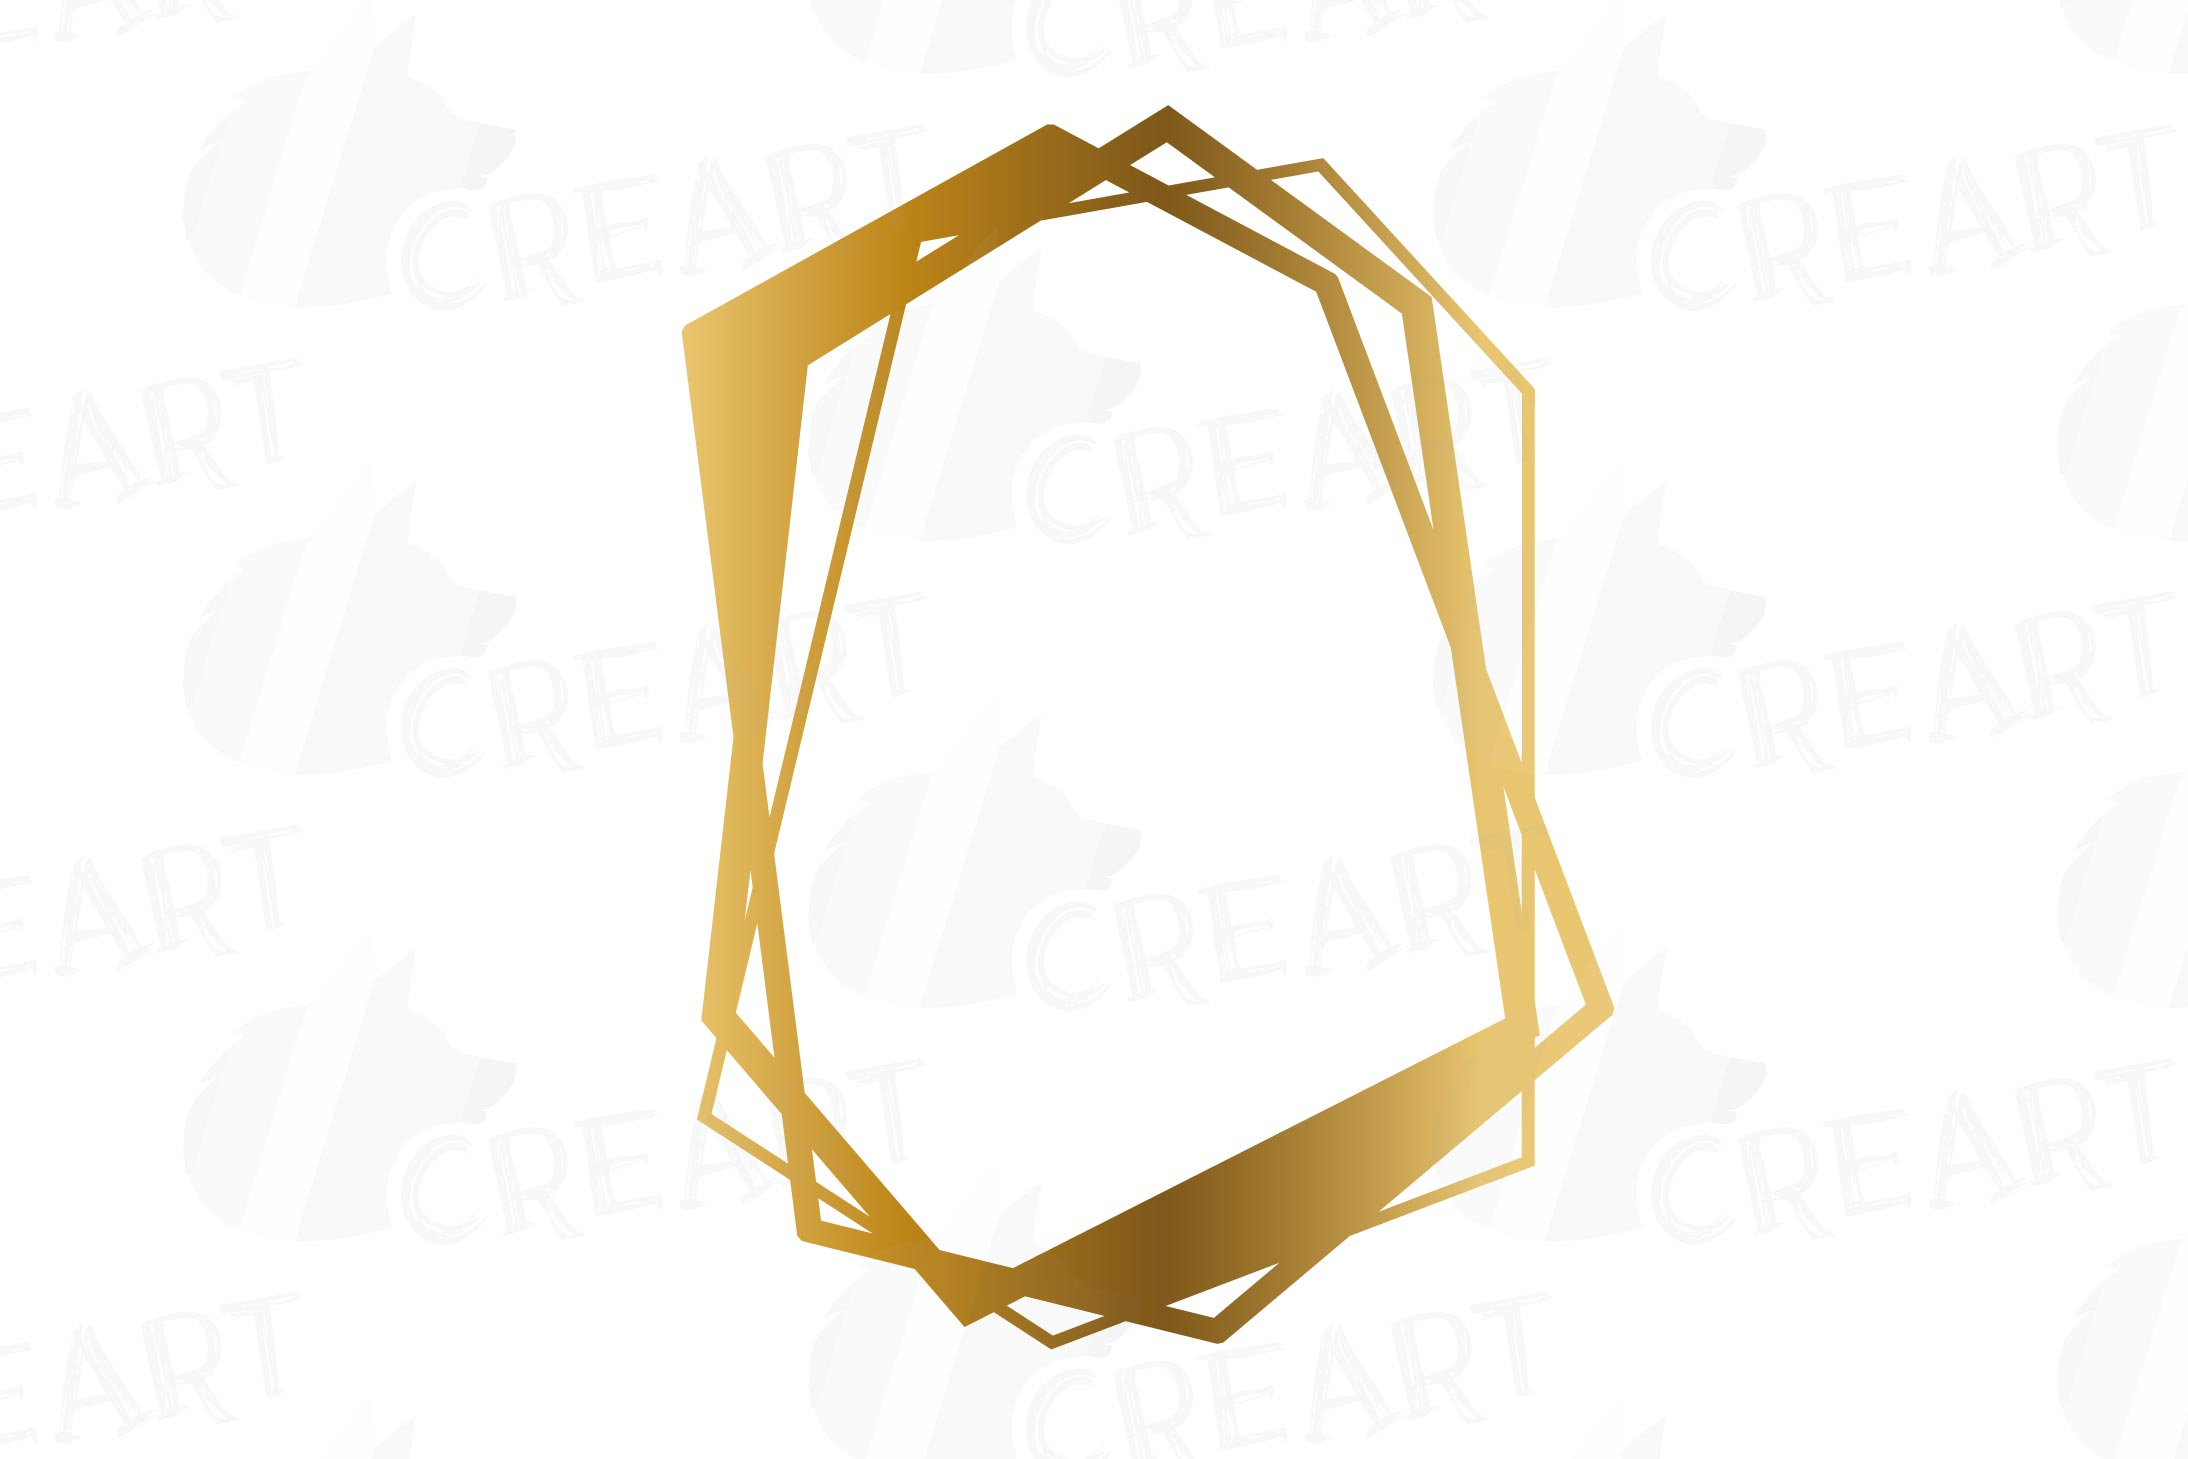 Chaotic geometric golden frames, lineal frames clip art example image 4